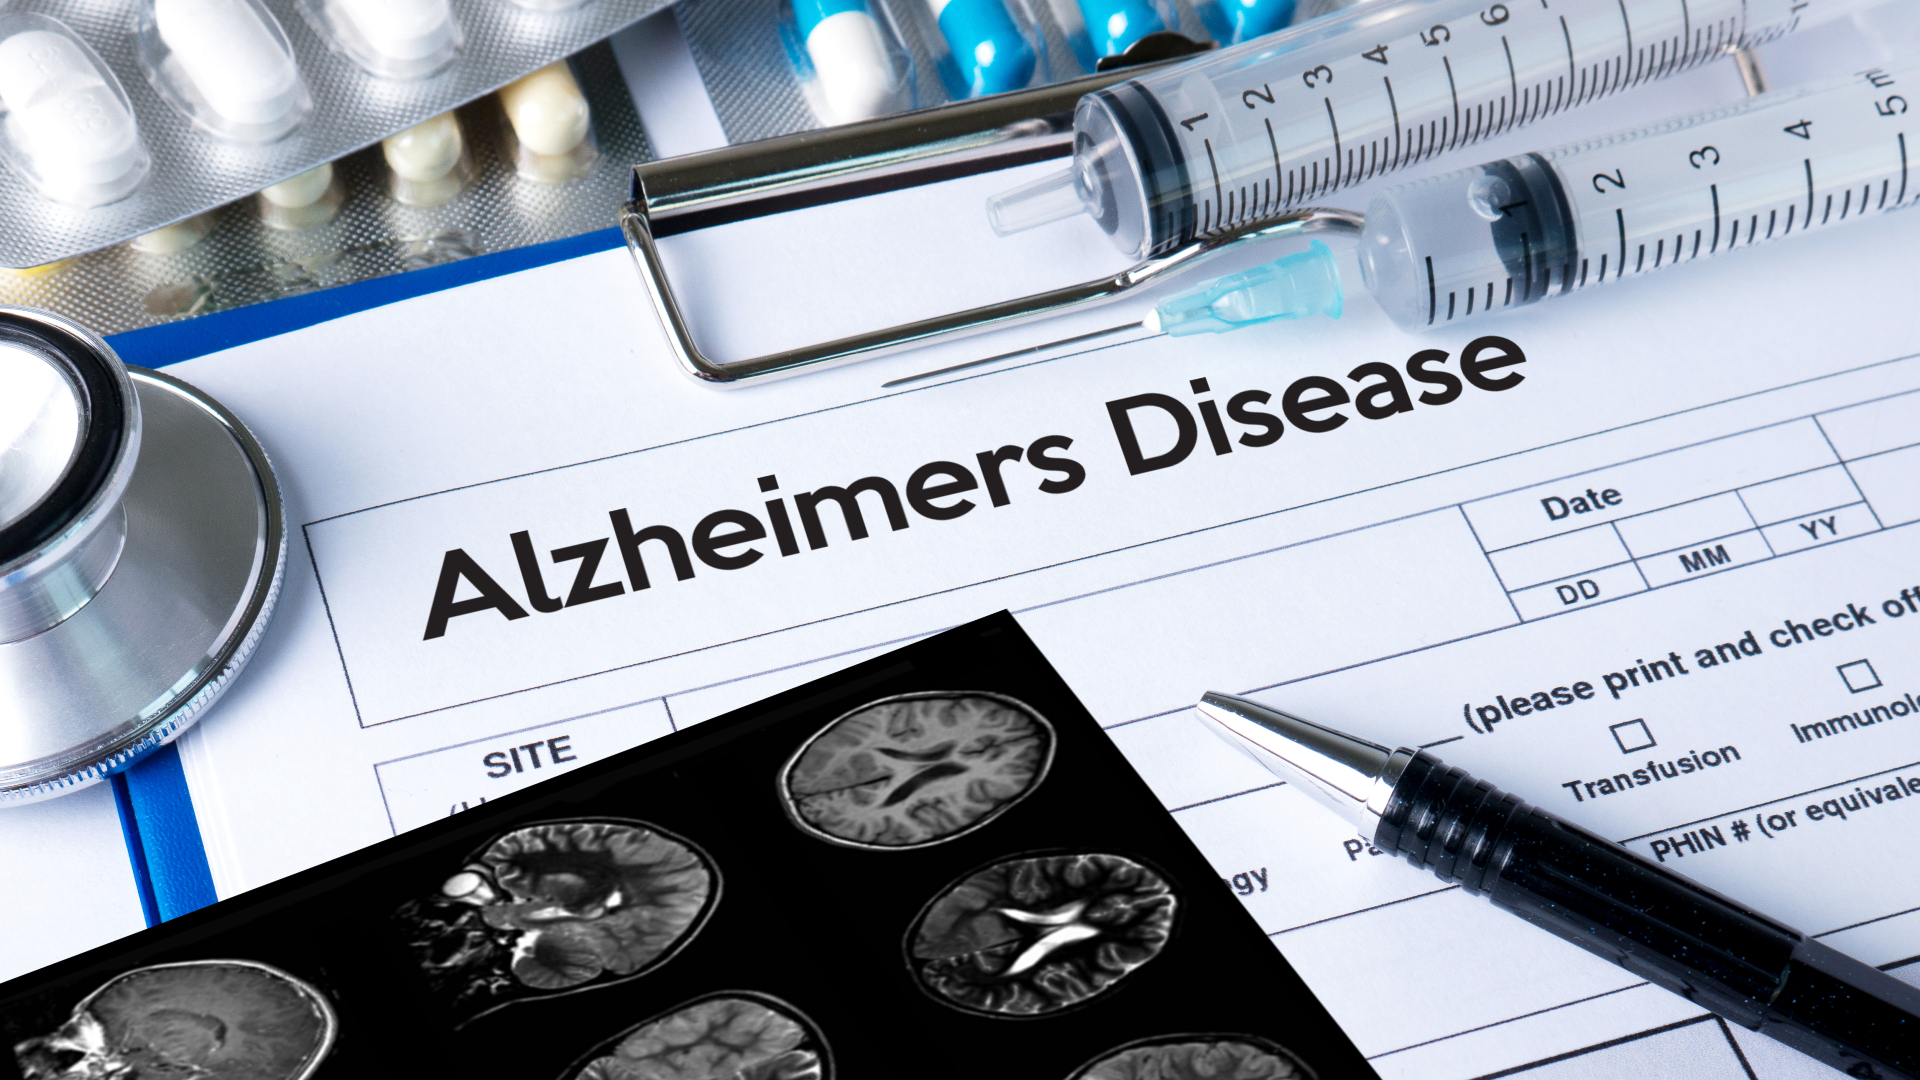 Atrium Health is responding to the new, controversial FDA-approved Alzheimer's drug with statements from experts across service lines.